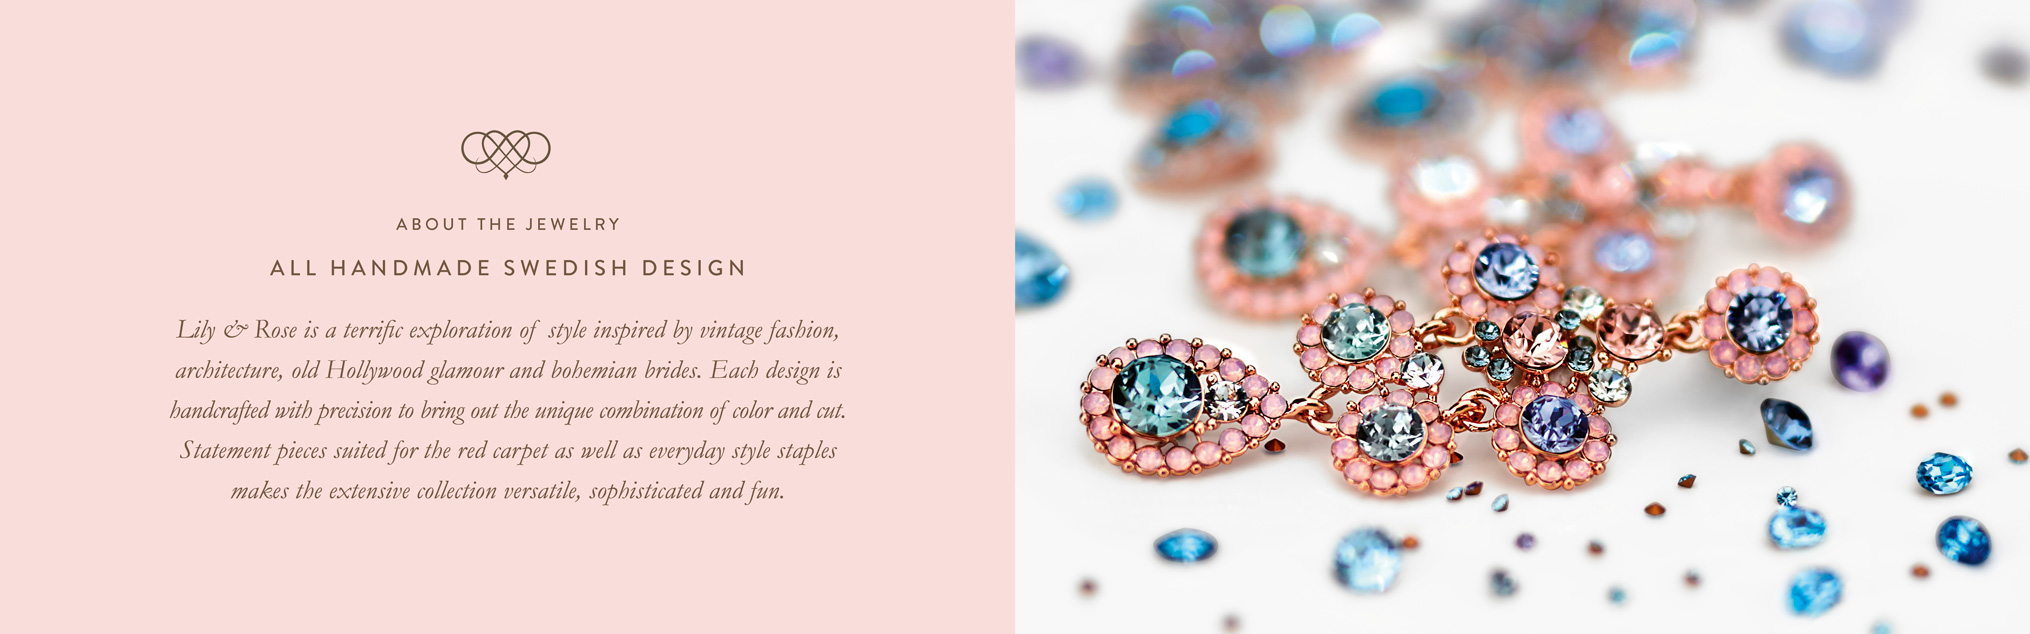 dae1a2c8 Jewellery Online - Lily and Rose Europe